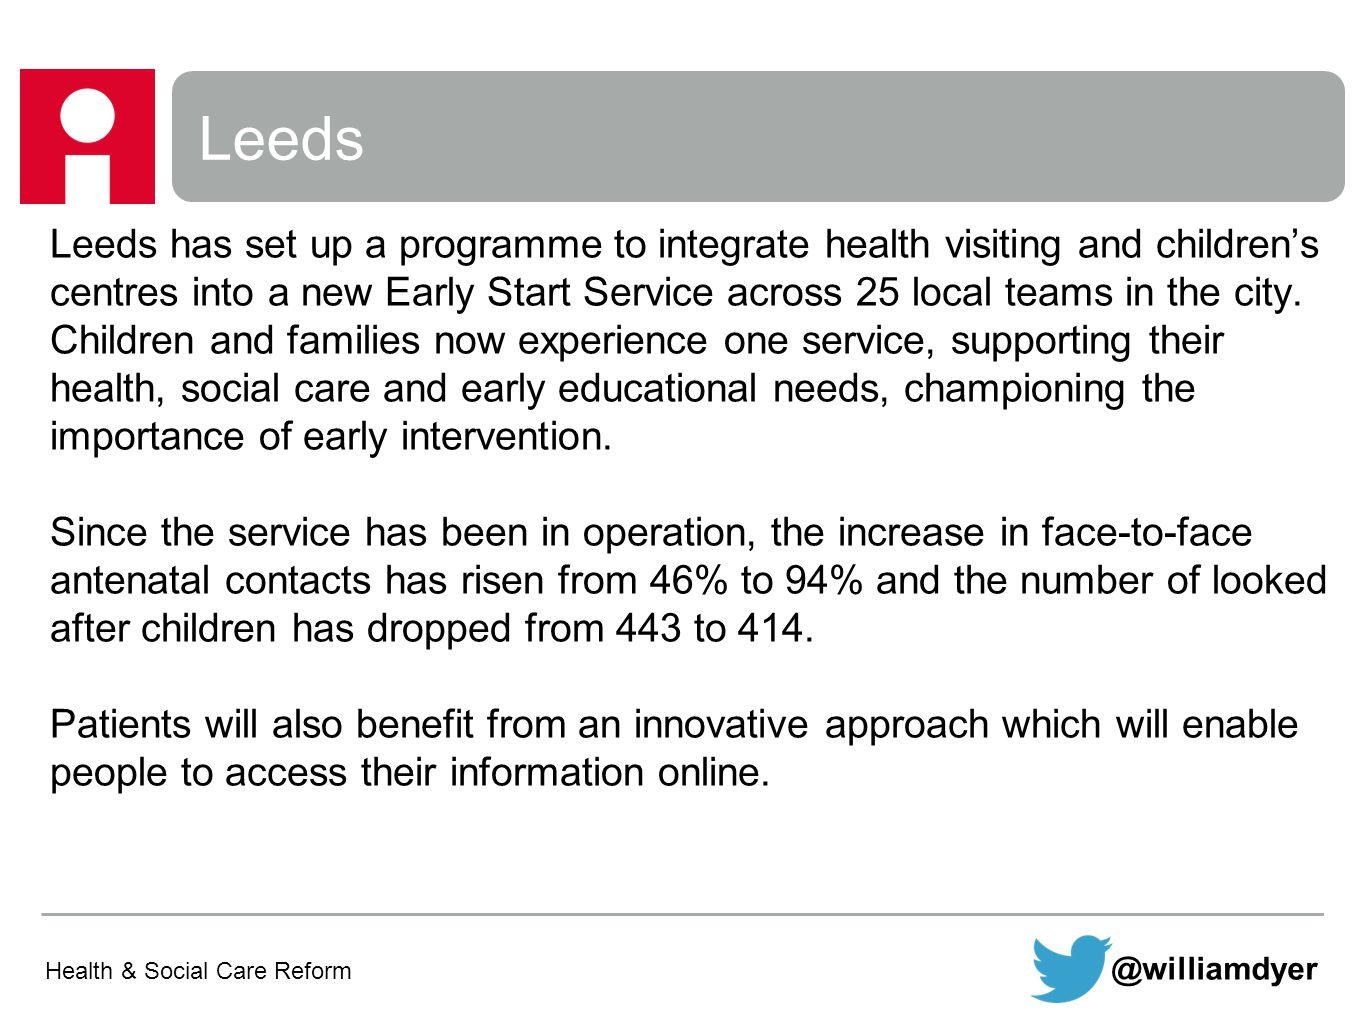 Leeds Health & Social Care Reform @williamdyer Leeds has set up a programme to integrate health visiting and children's centres into a new Early Start Service across 25 local teams in the city.